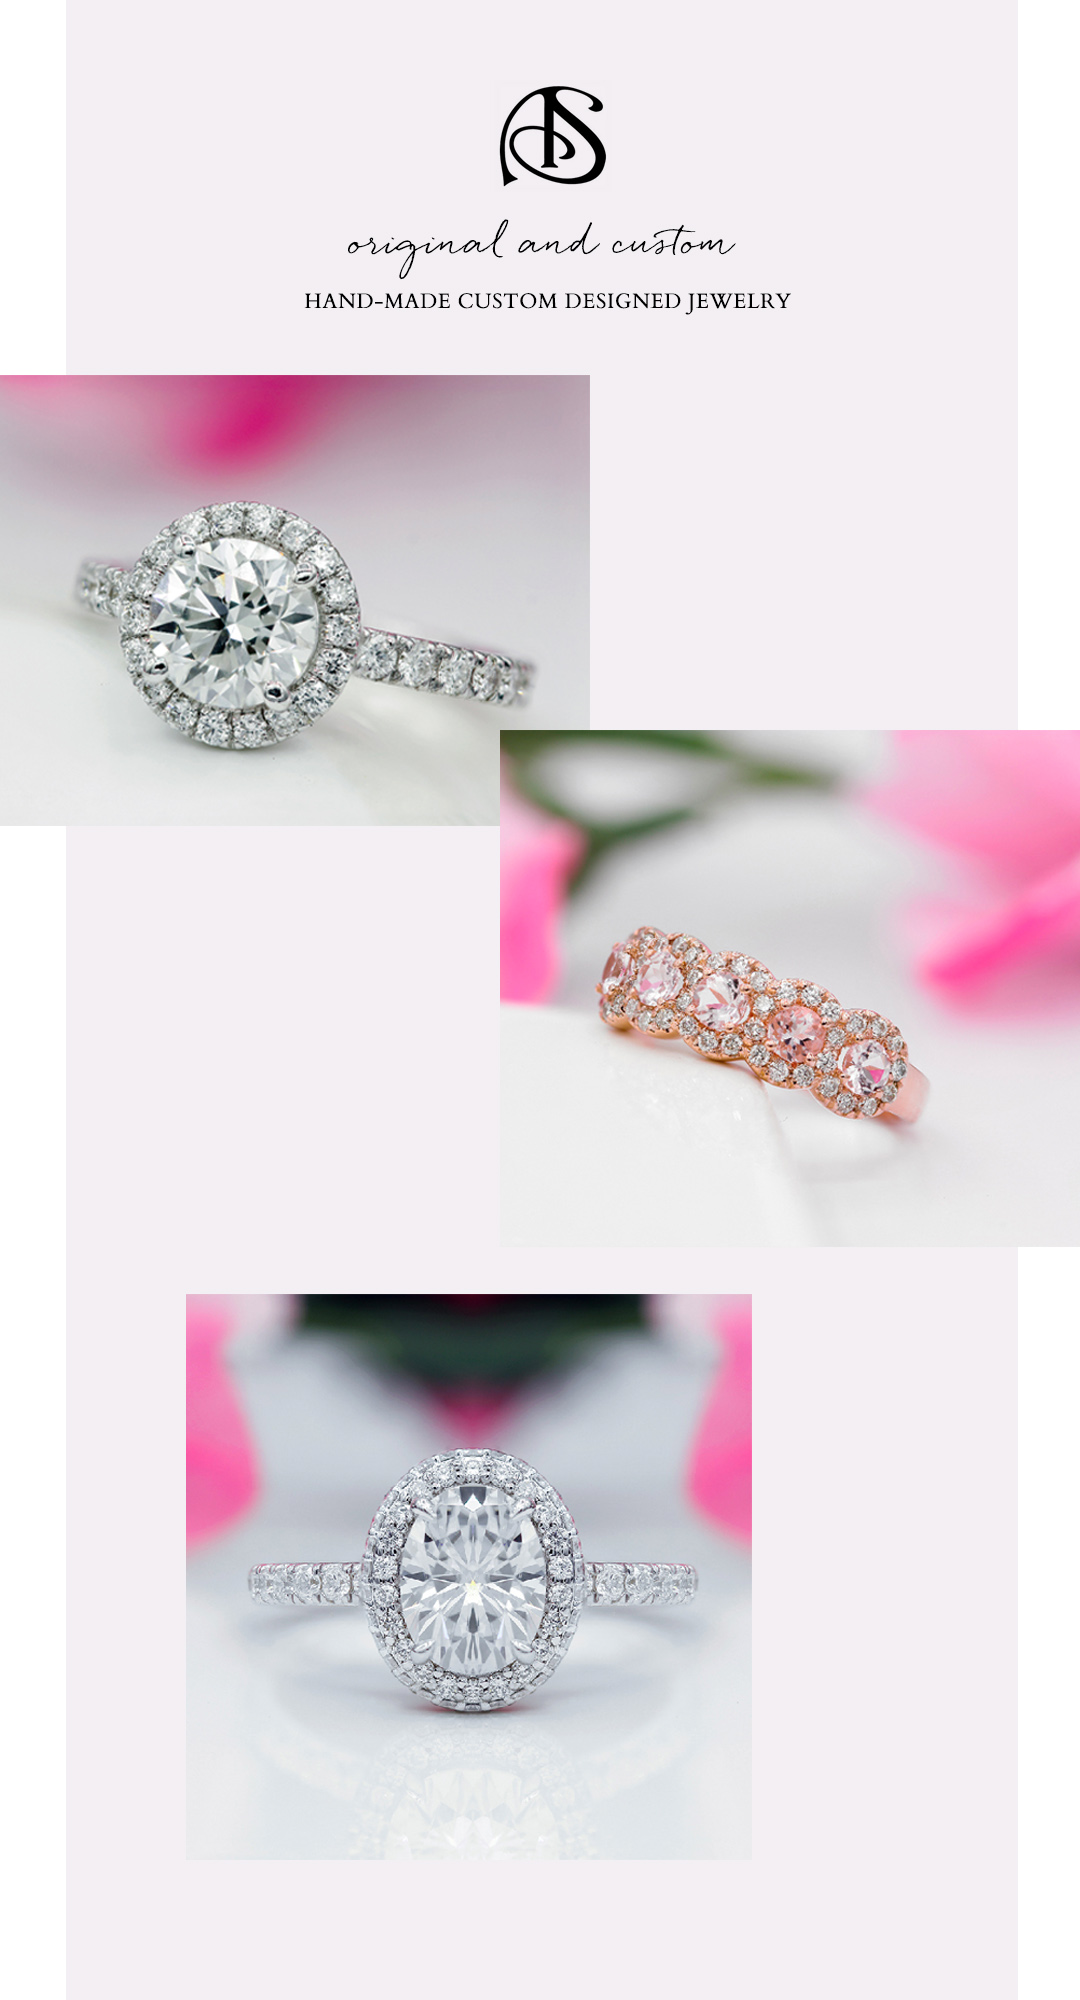 Alexander Sparks hand made engagement rings